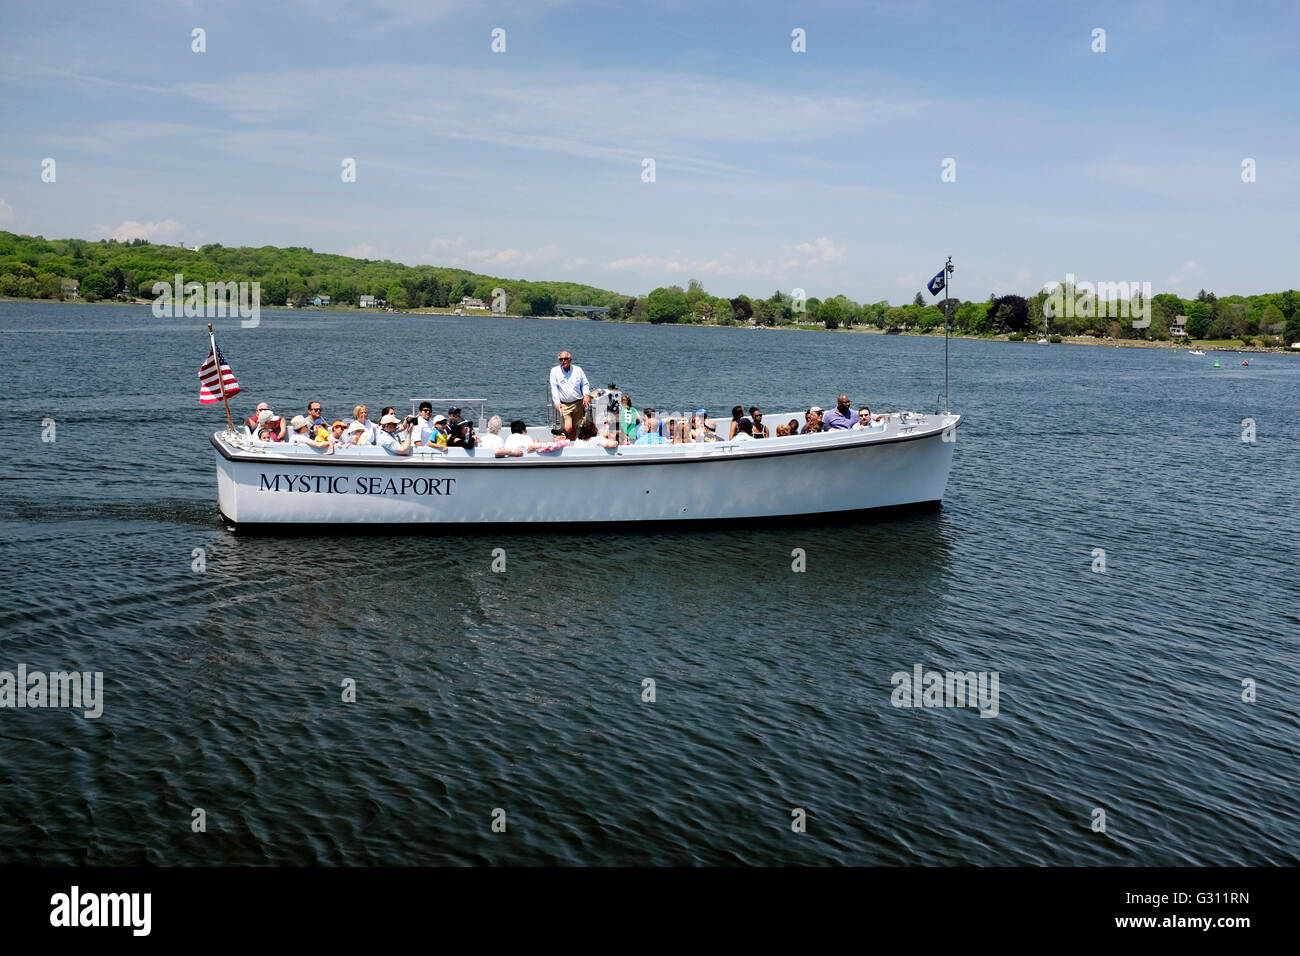 Mystic Seaport tour boat heading out - Stock Image